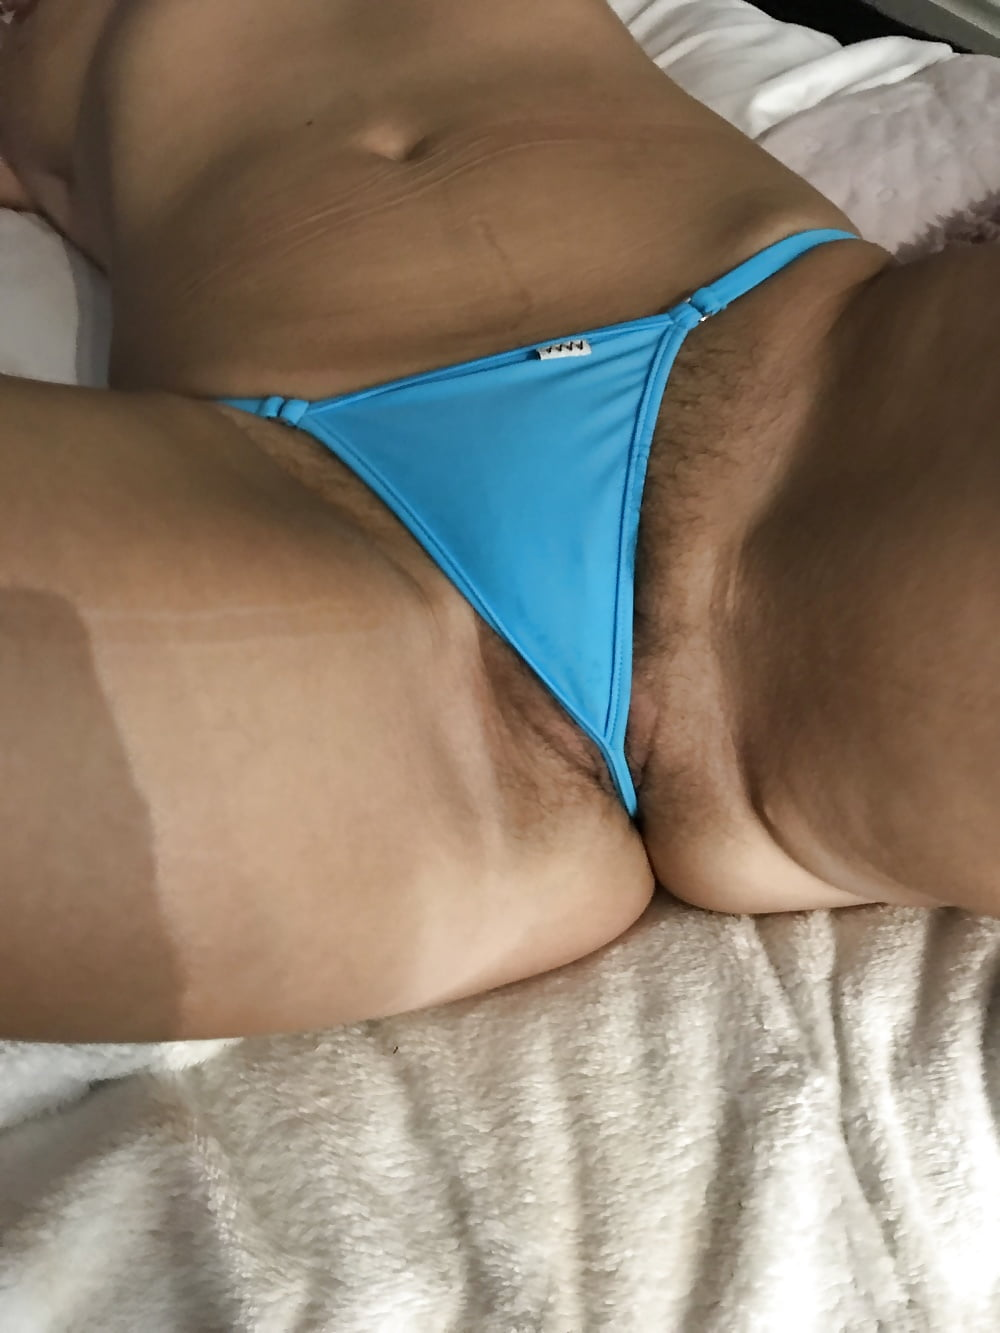 young tit muff fanny naked